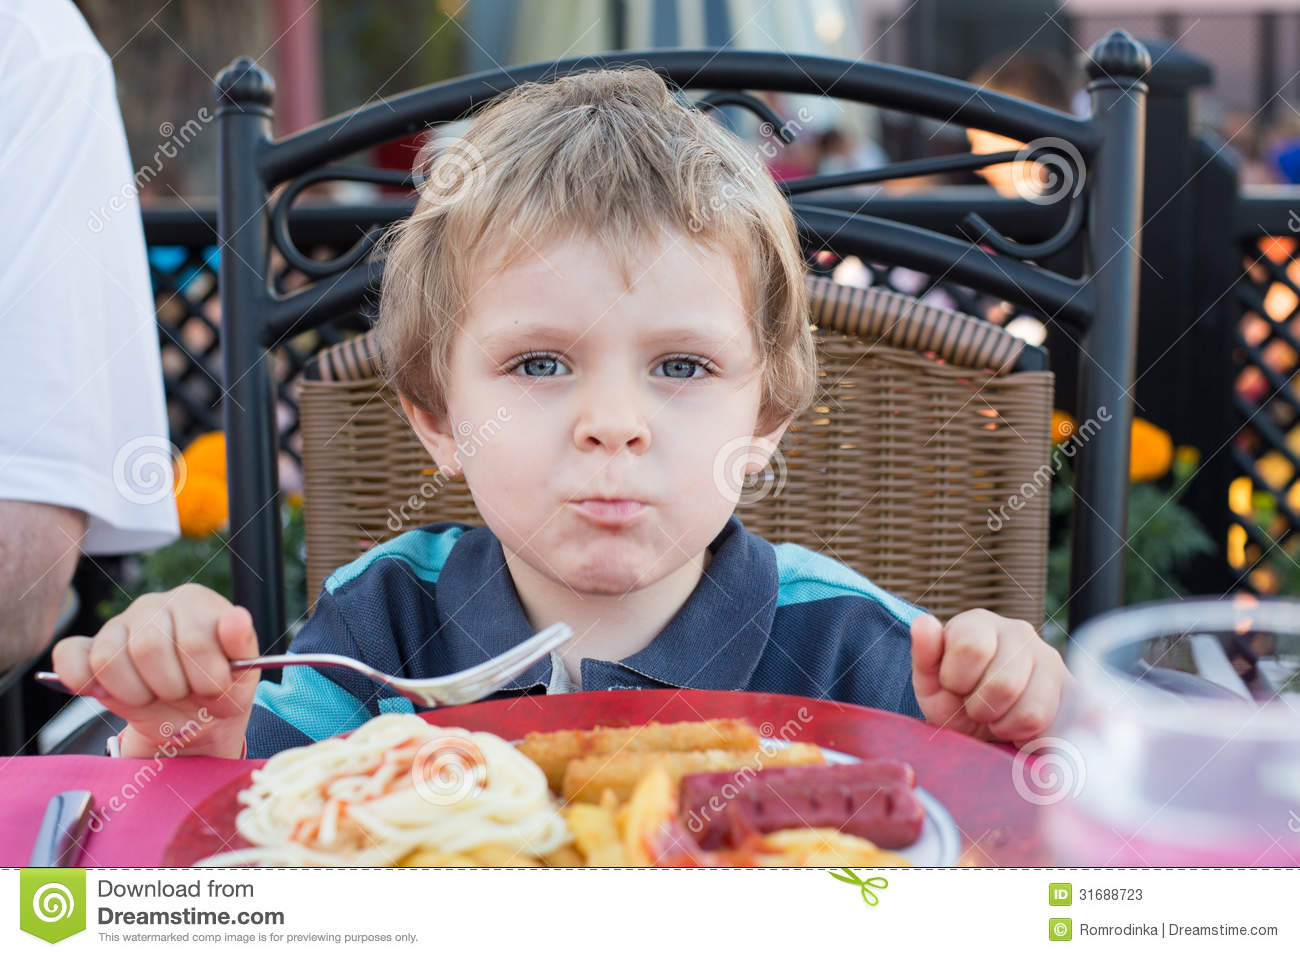 cfc86481c8c38 Cute Little Boy Eating French Fries In Summer Stock Image - Image of ...